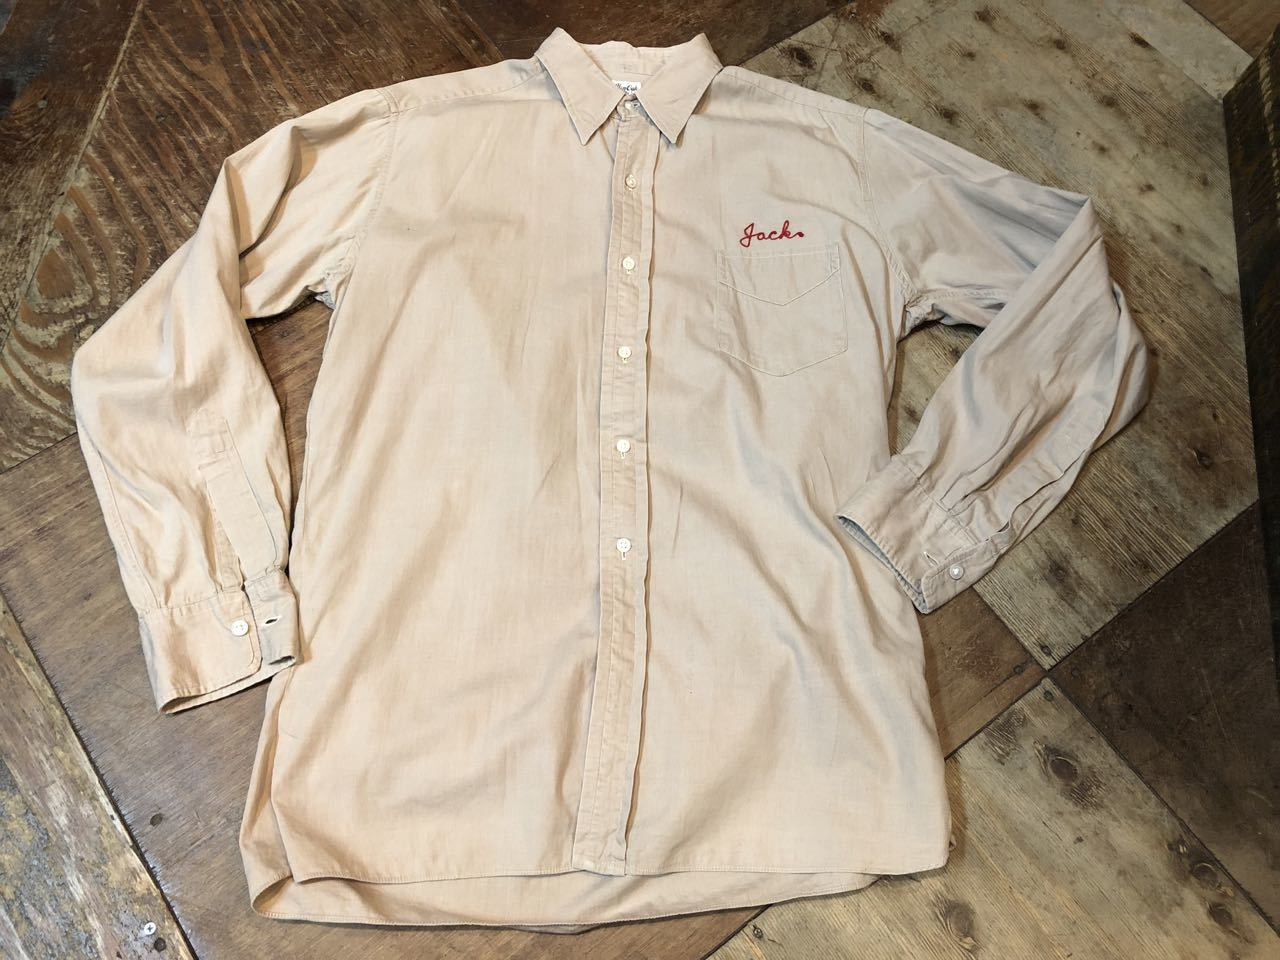 4月27日(土)入荷!40s  GlenOak de luxe all cotton  Embroidery work shirts!!_c0144020_14374942.jpg